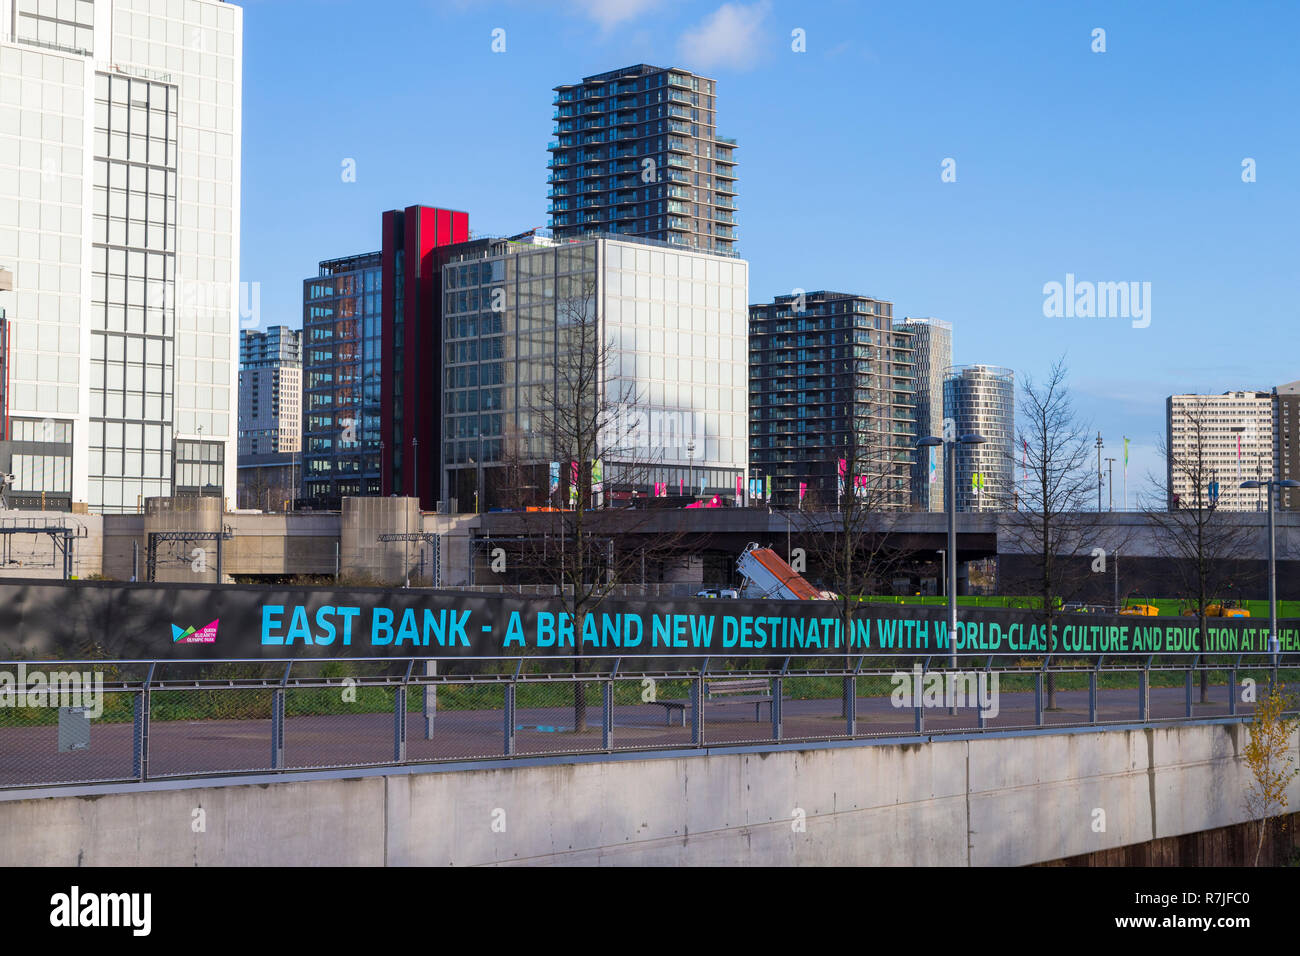 East bank site, stratford, london, uk Stock Photo